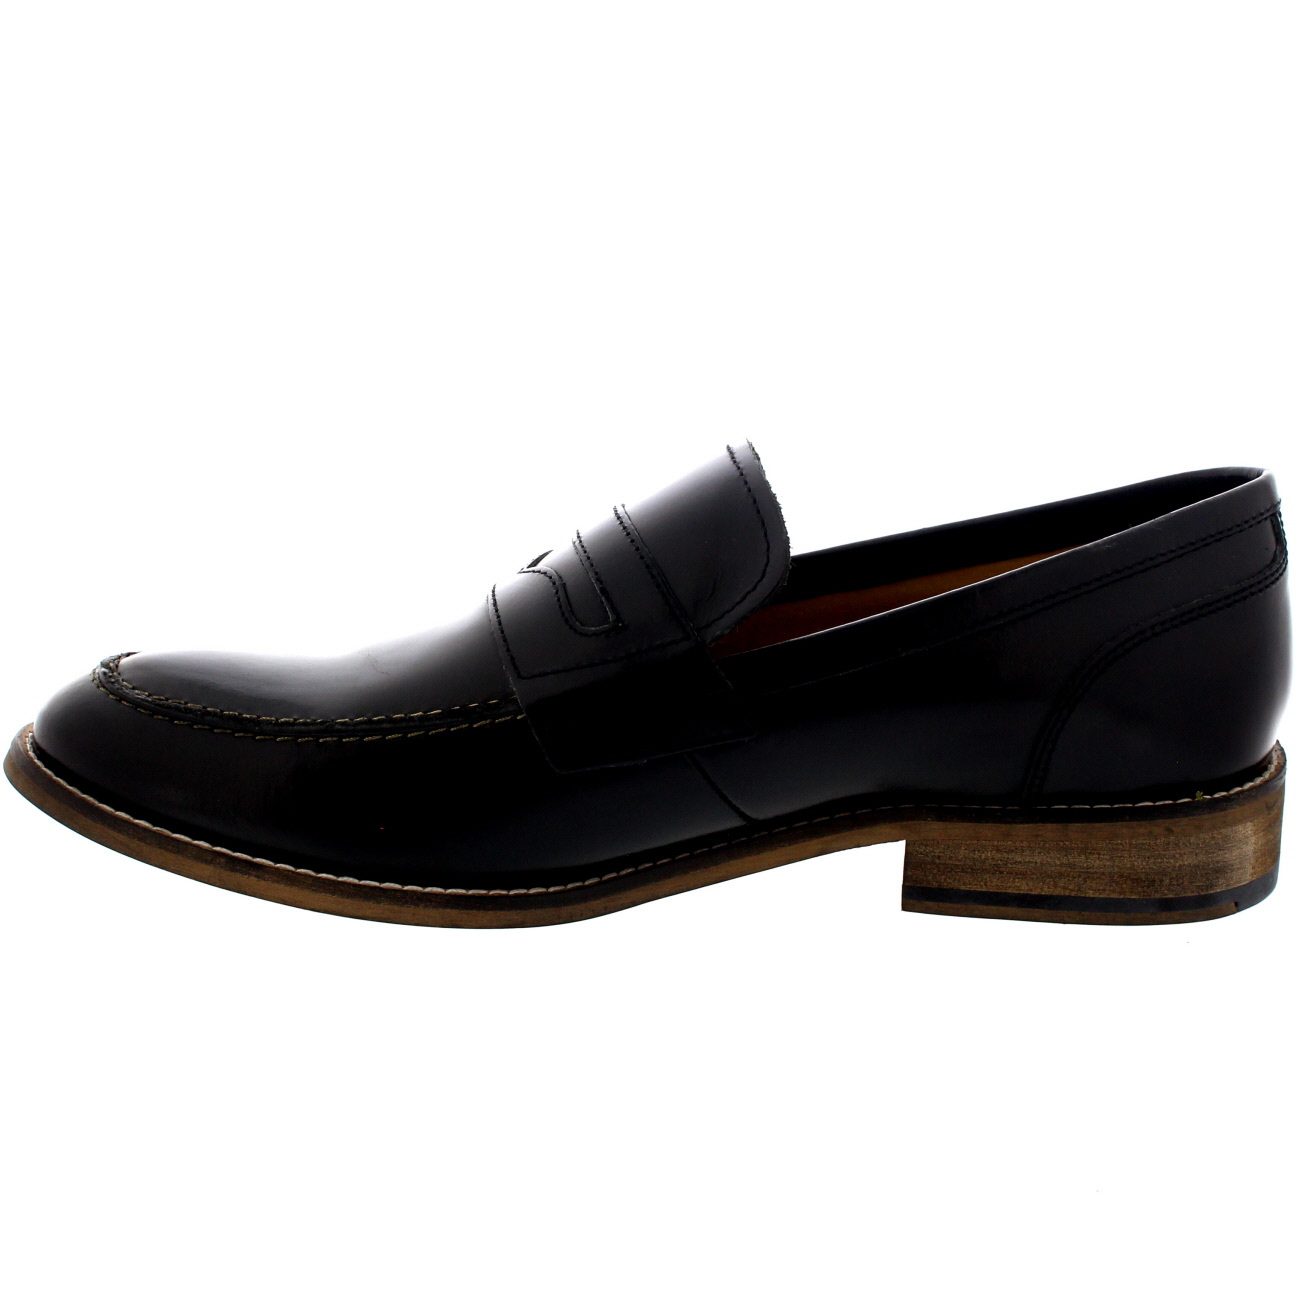 Mens Ikon Marner Slip On Smart Work Penny Loafers Leather ...